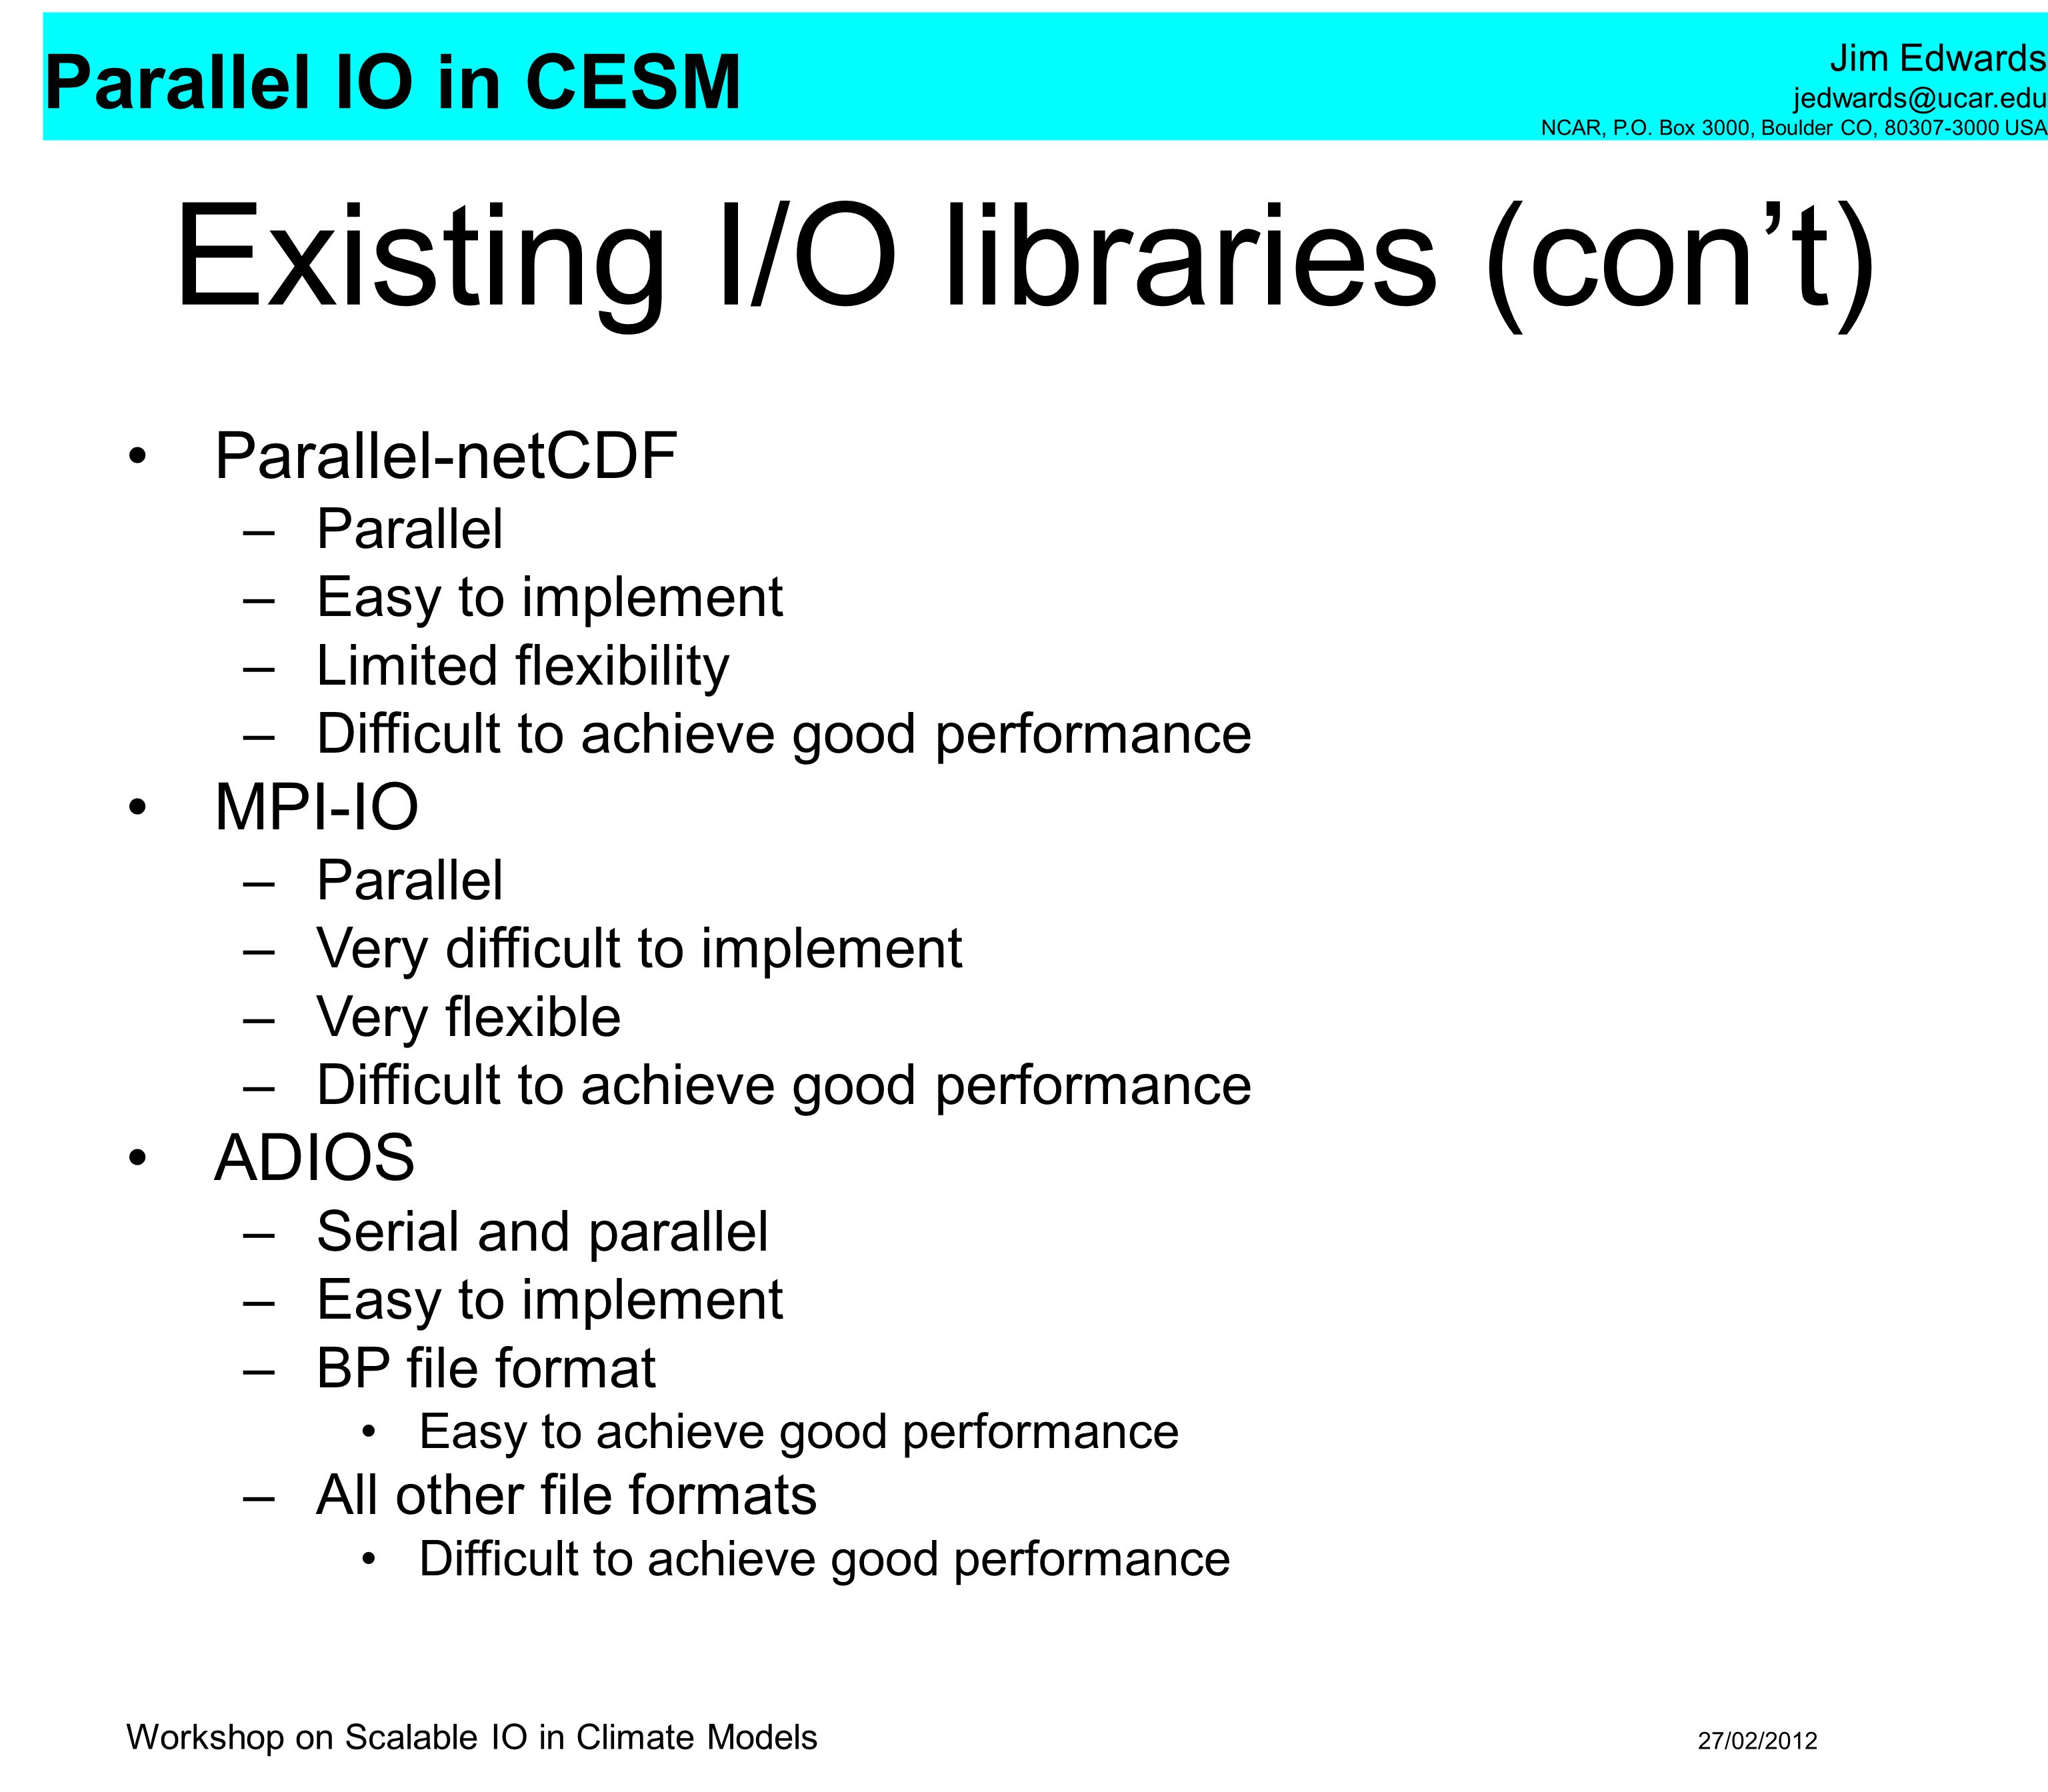 Existing I/O libraries (con't)